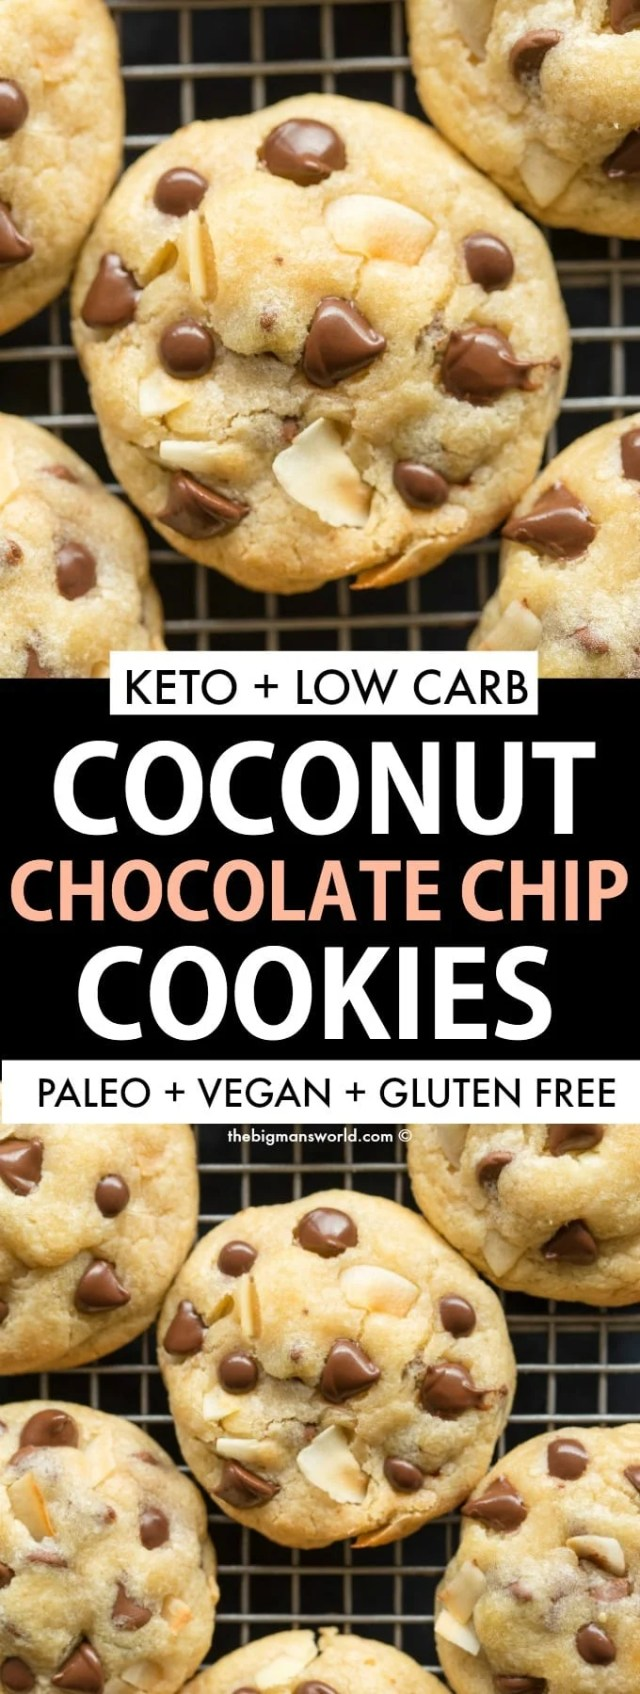 Easy chocolate chip cookies with coconut recipe- Paleo, vegan and keto friendly!